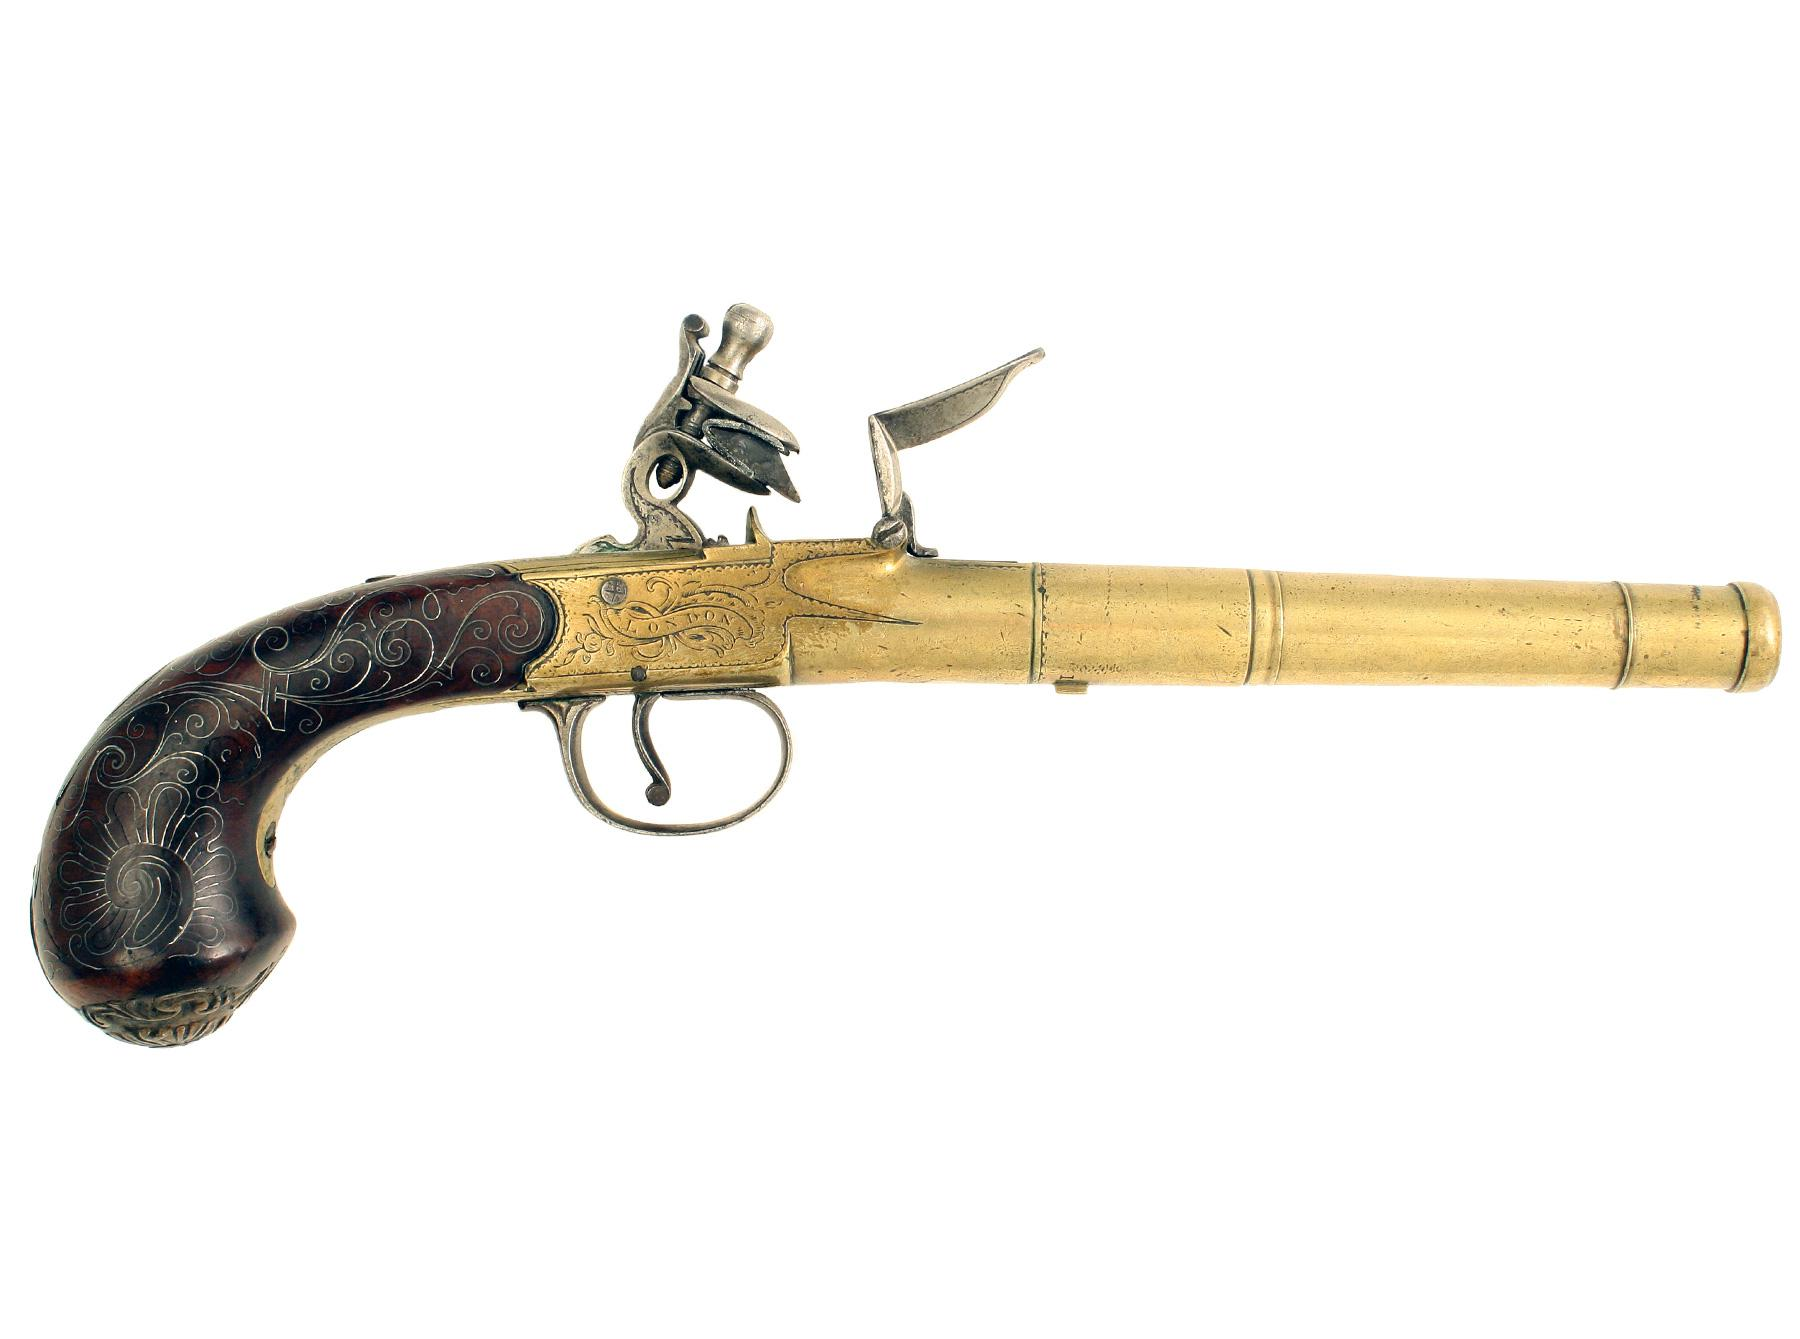 An Untouched Silver Mounted Pistol by Bunney